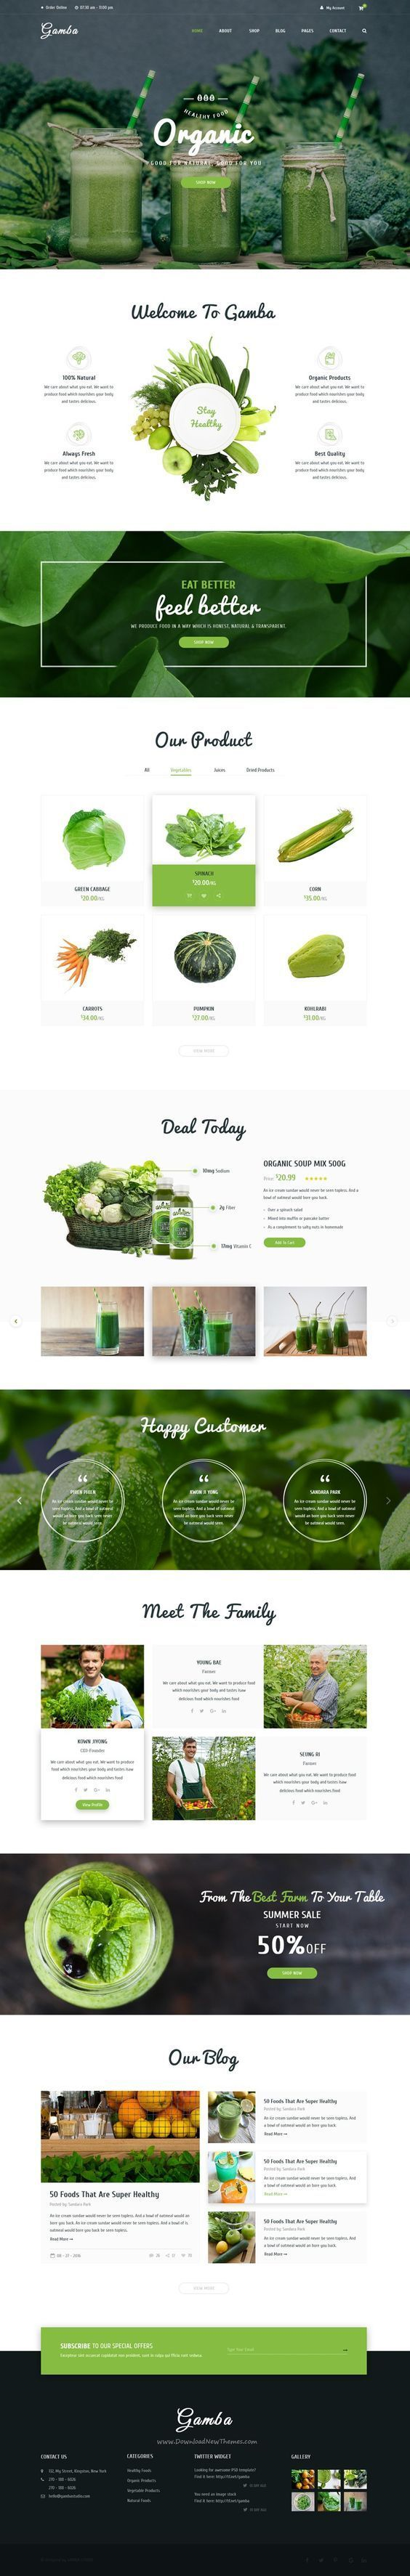 Gamba is a powerful, modern and creative #PSD template designed for food #organic #shop websites download now➯ https://themeforest.net/item/gamba-organic-psd-template/16928343?ref=Dataasata: